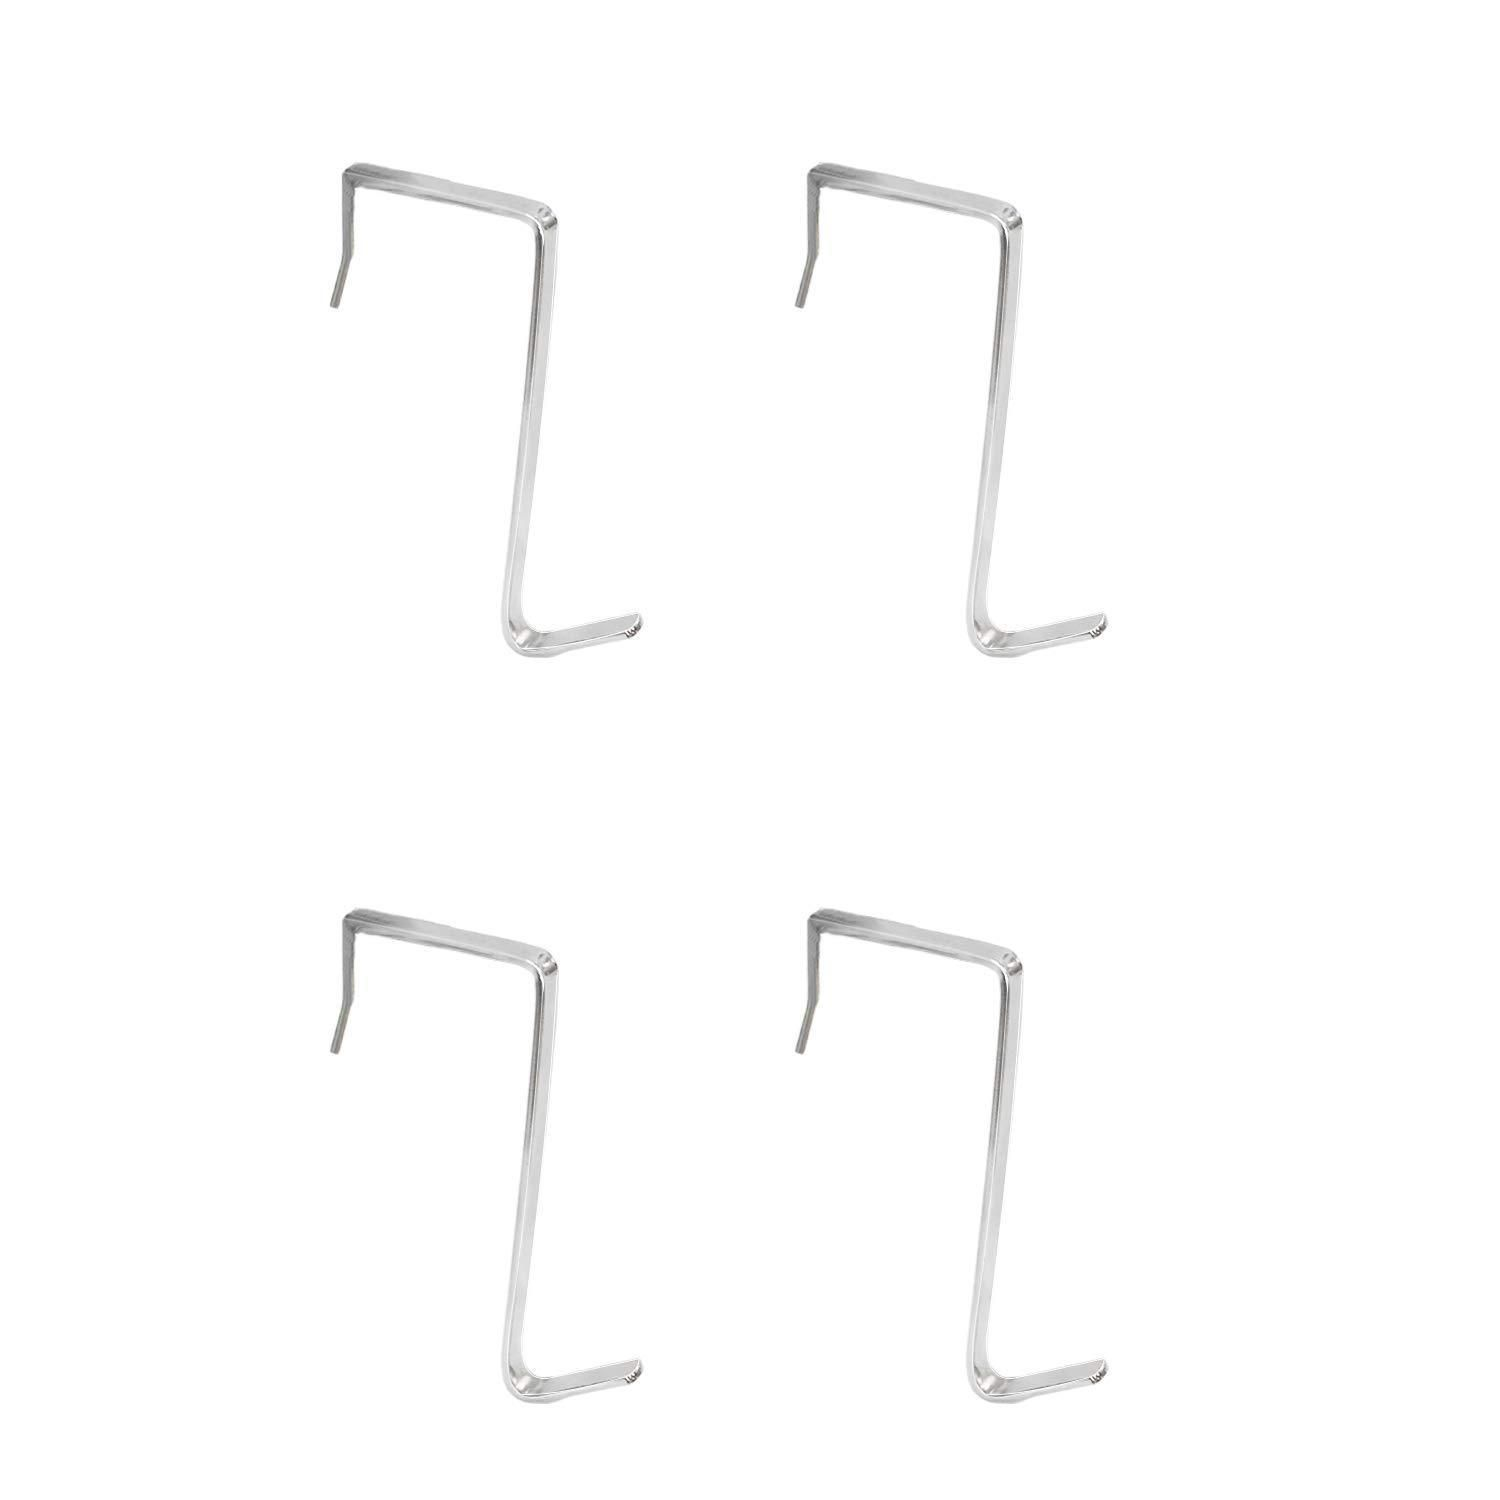 4 Packs Over The Door Hooks Cubicle Hooks For Hanging Stainless Steel Heavy Duty Door Hooks For Clothes Towels Purse Hanger Hooks For Bathroom Closet Back Door Hooks Over The